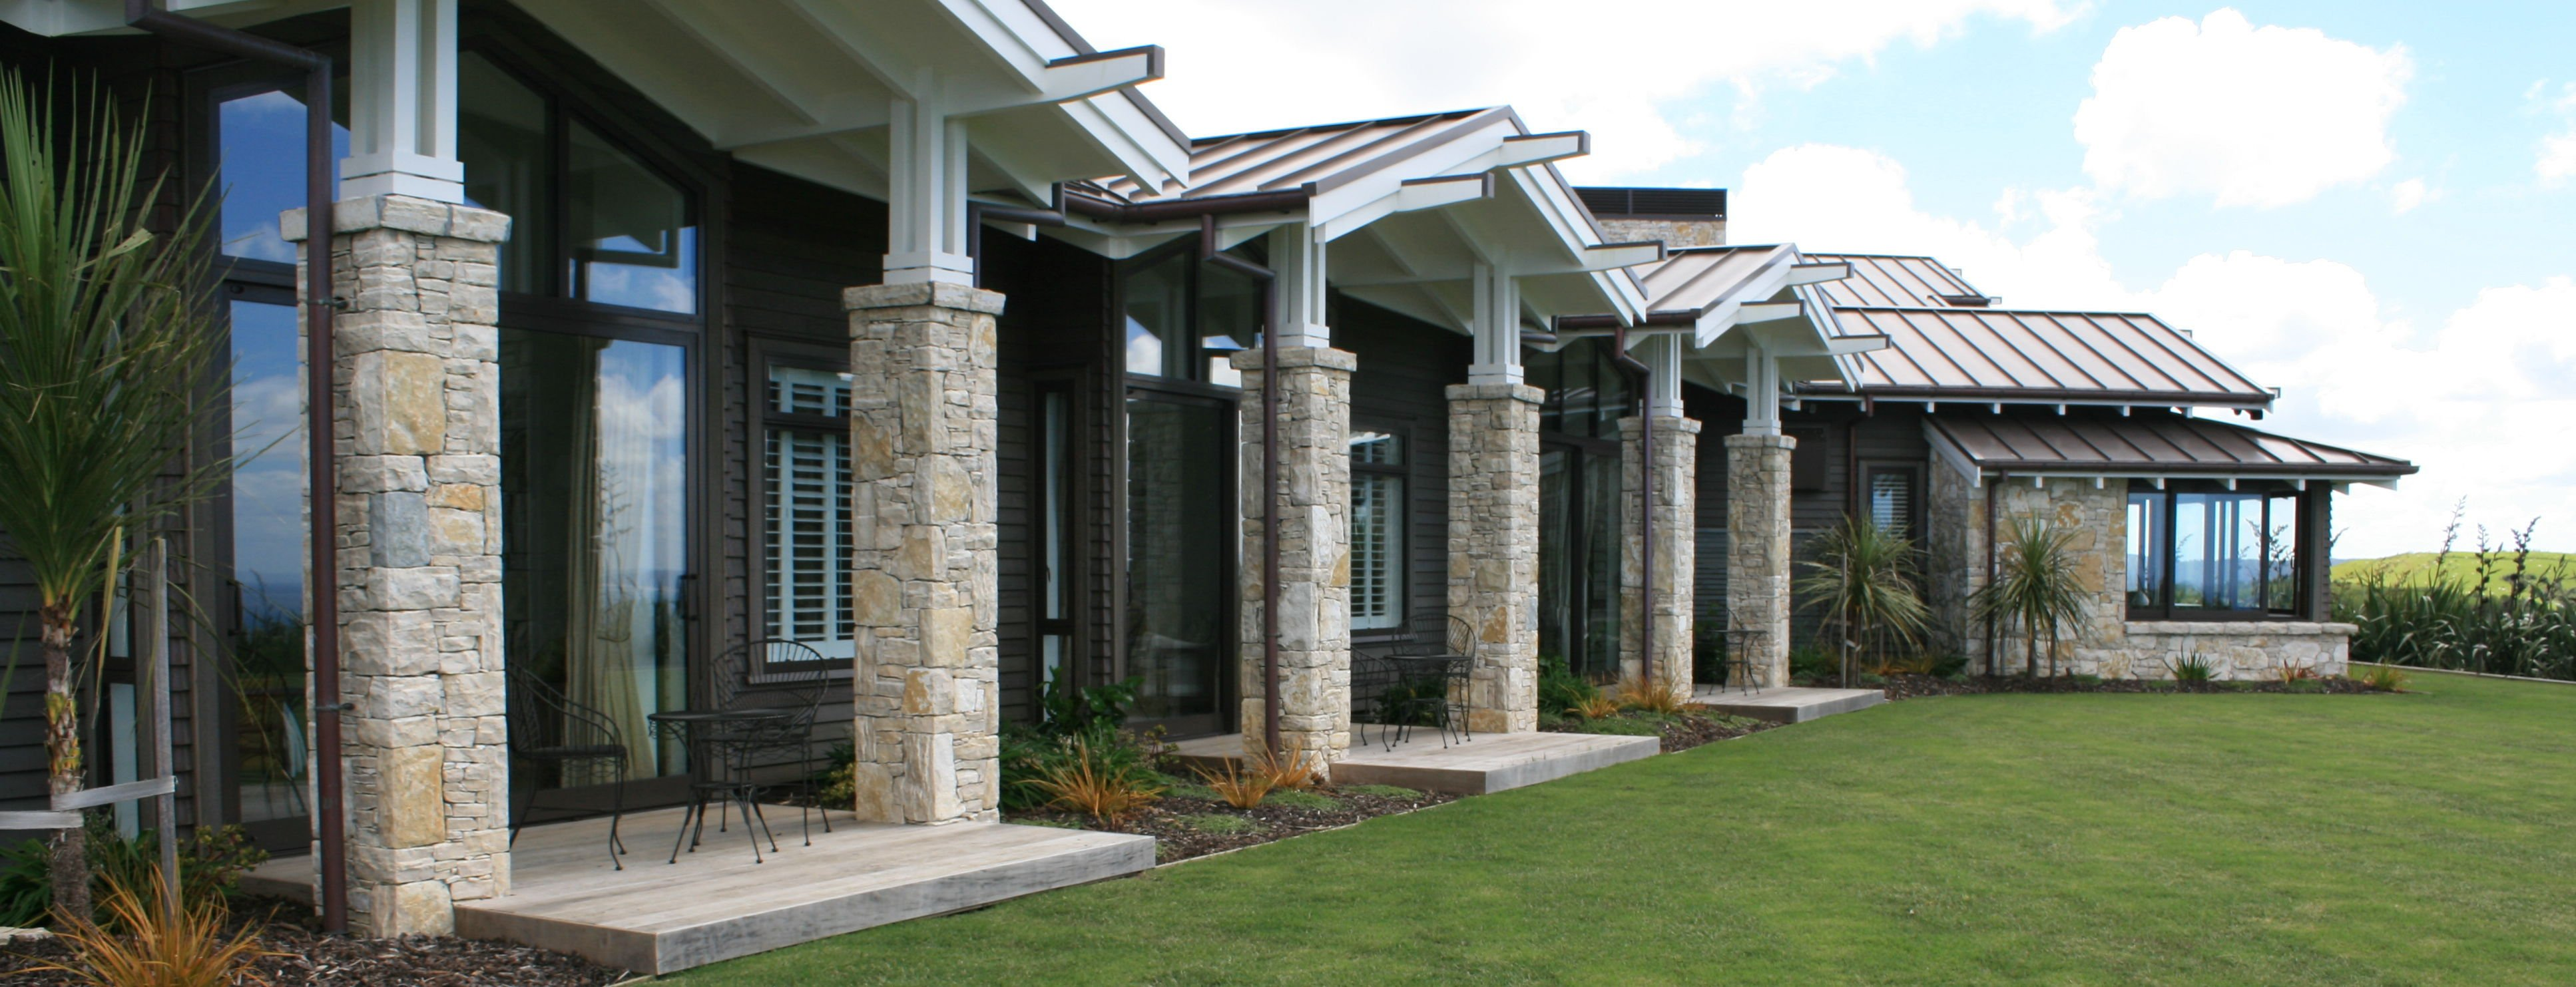 Stonemason contractors you can count on in Albany